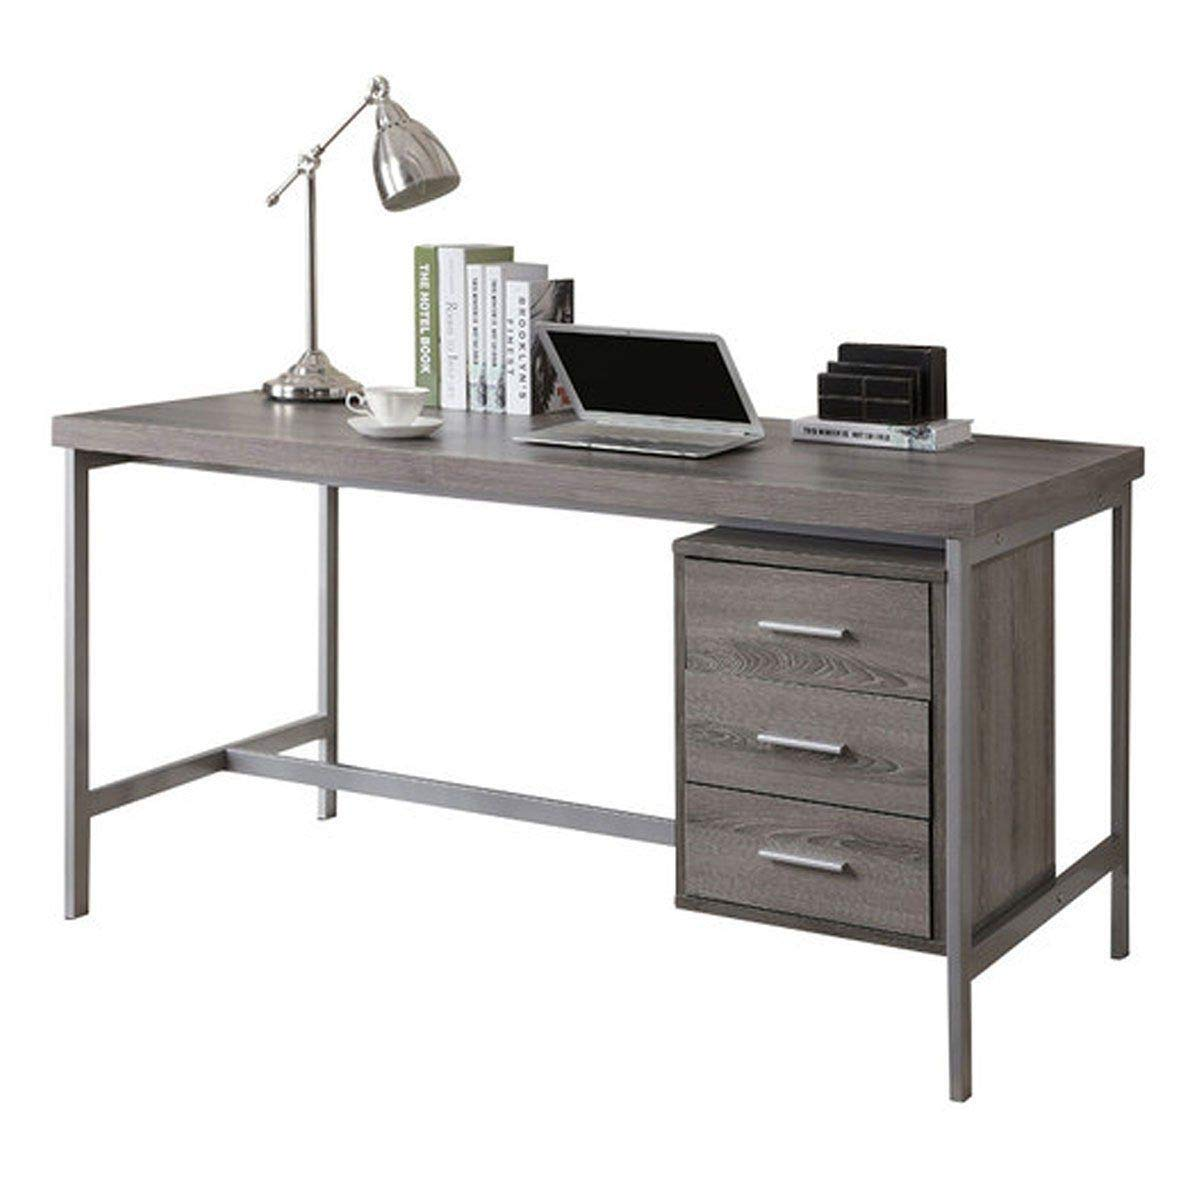 Cheap Office Desk Drawers, Find Office Desk Drawers Deals